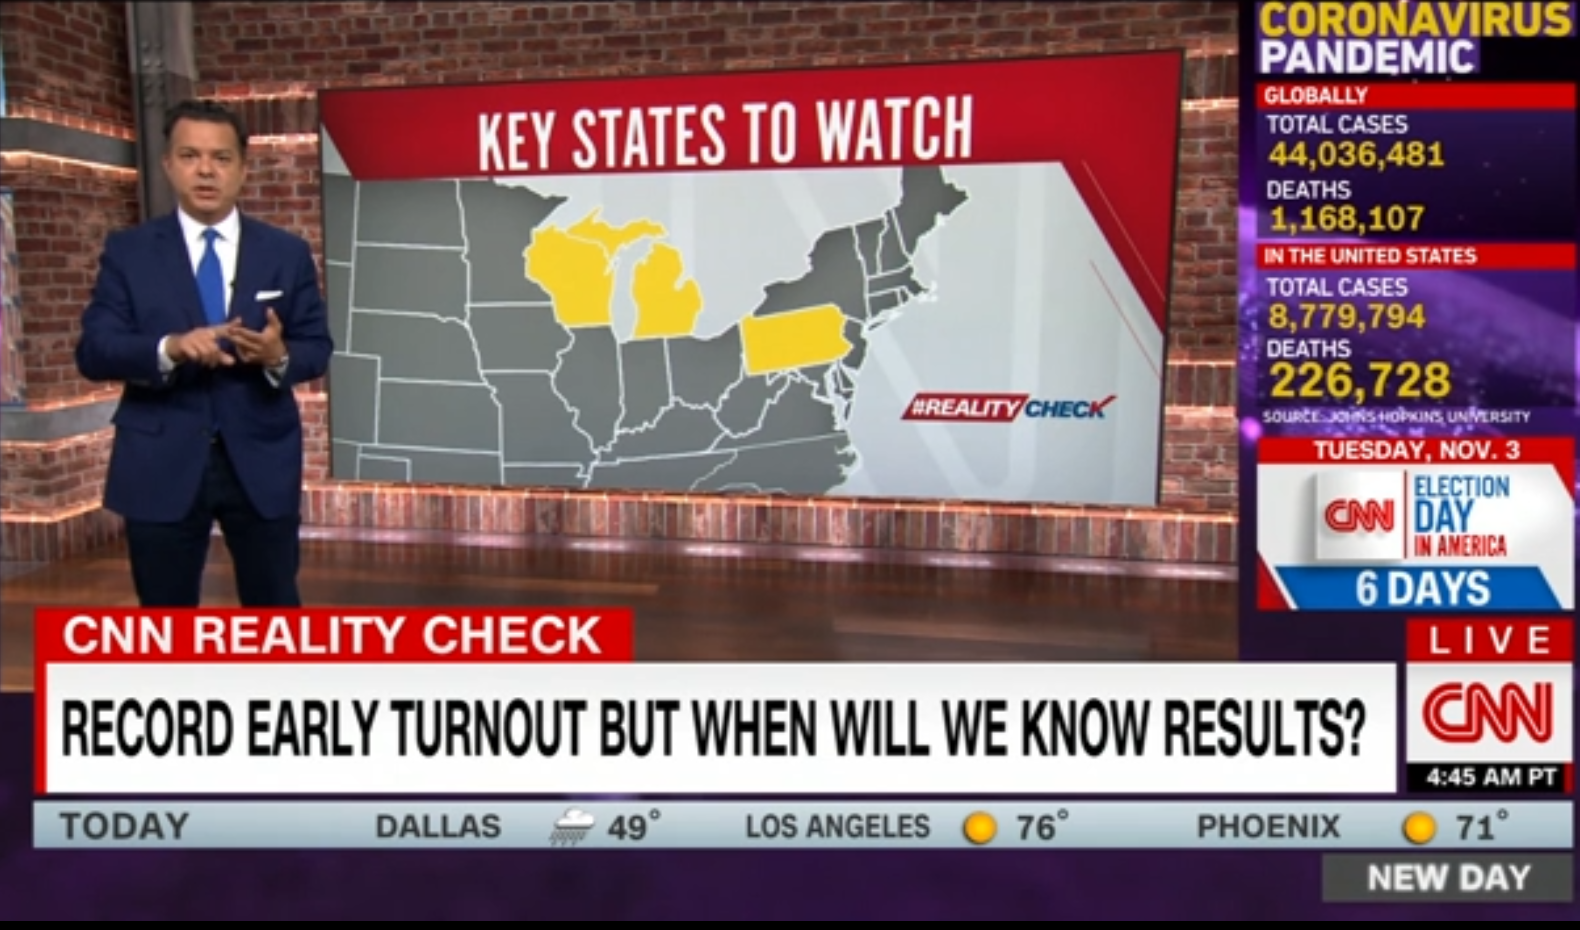 CNN: Record Early Turnout But When Will We Know Results?